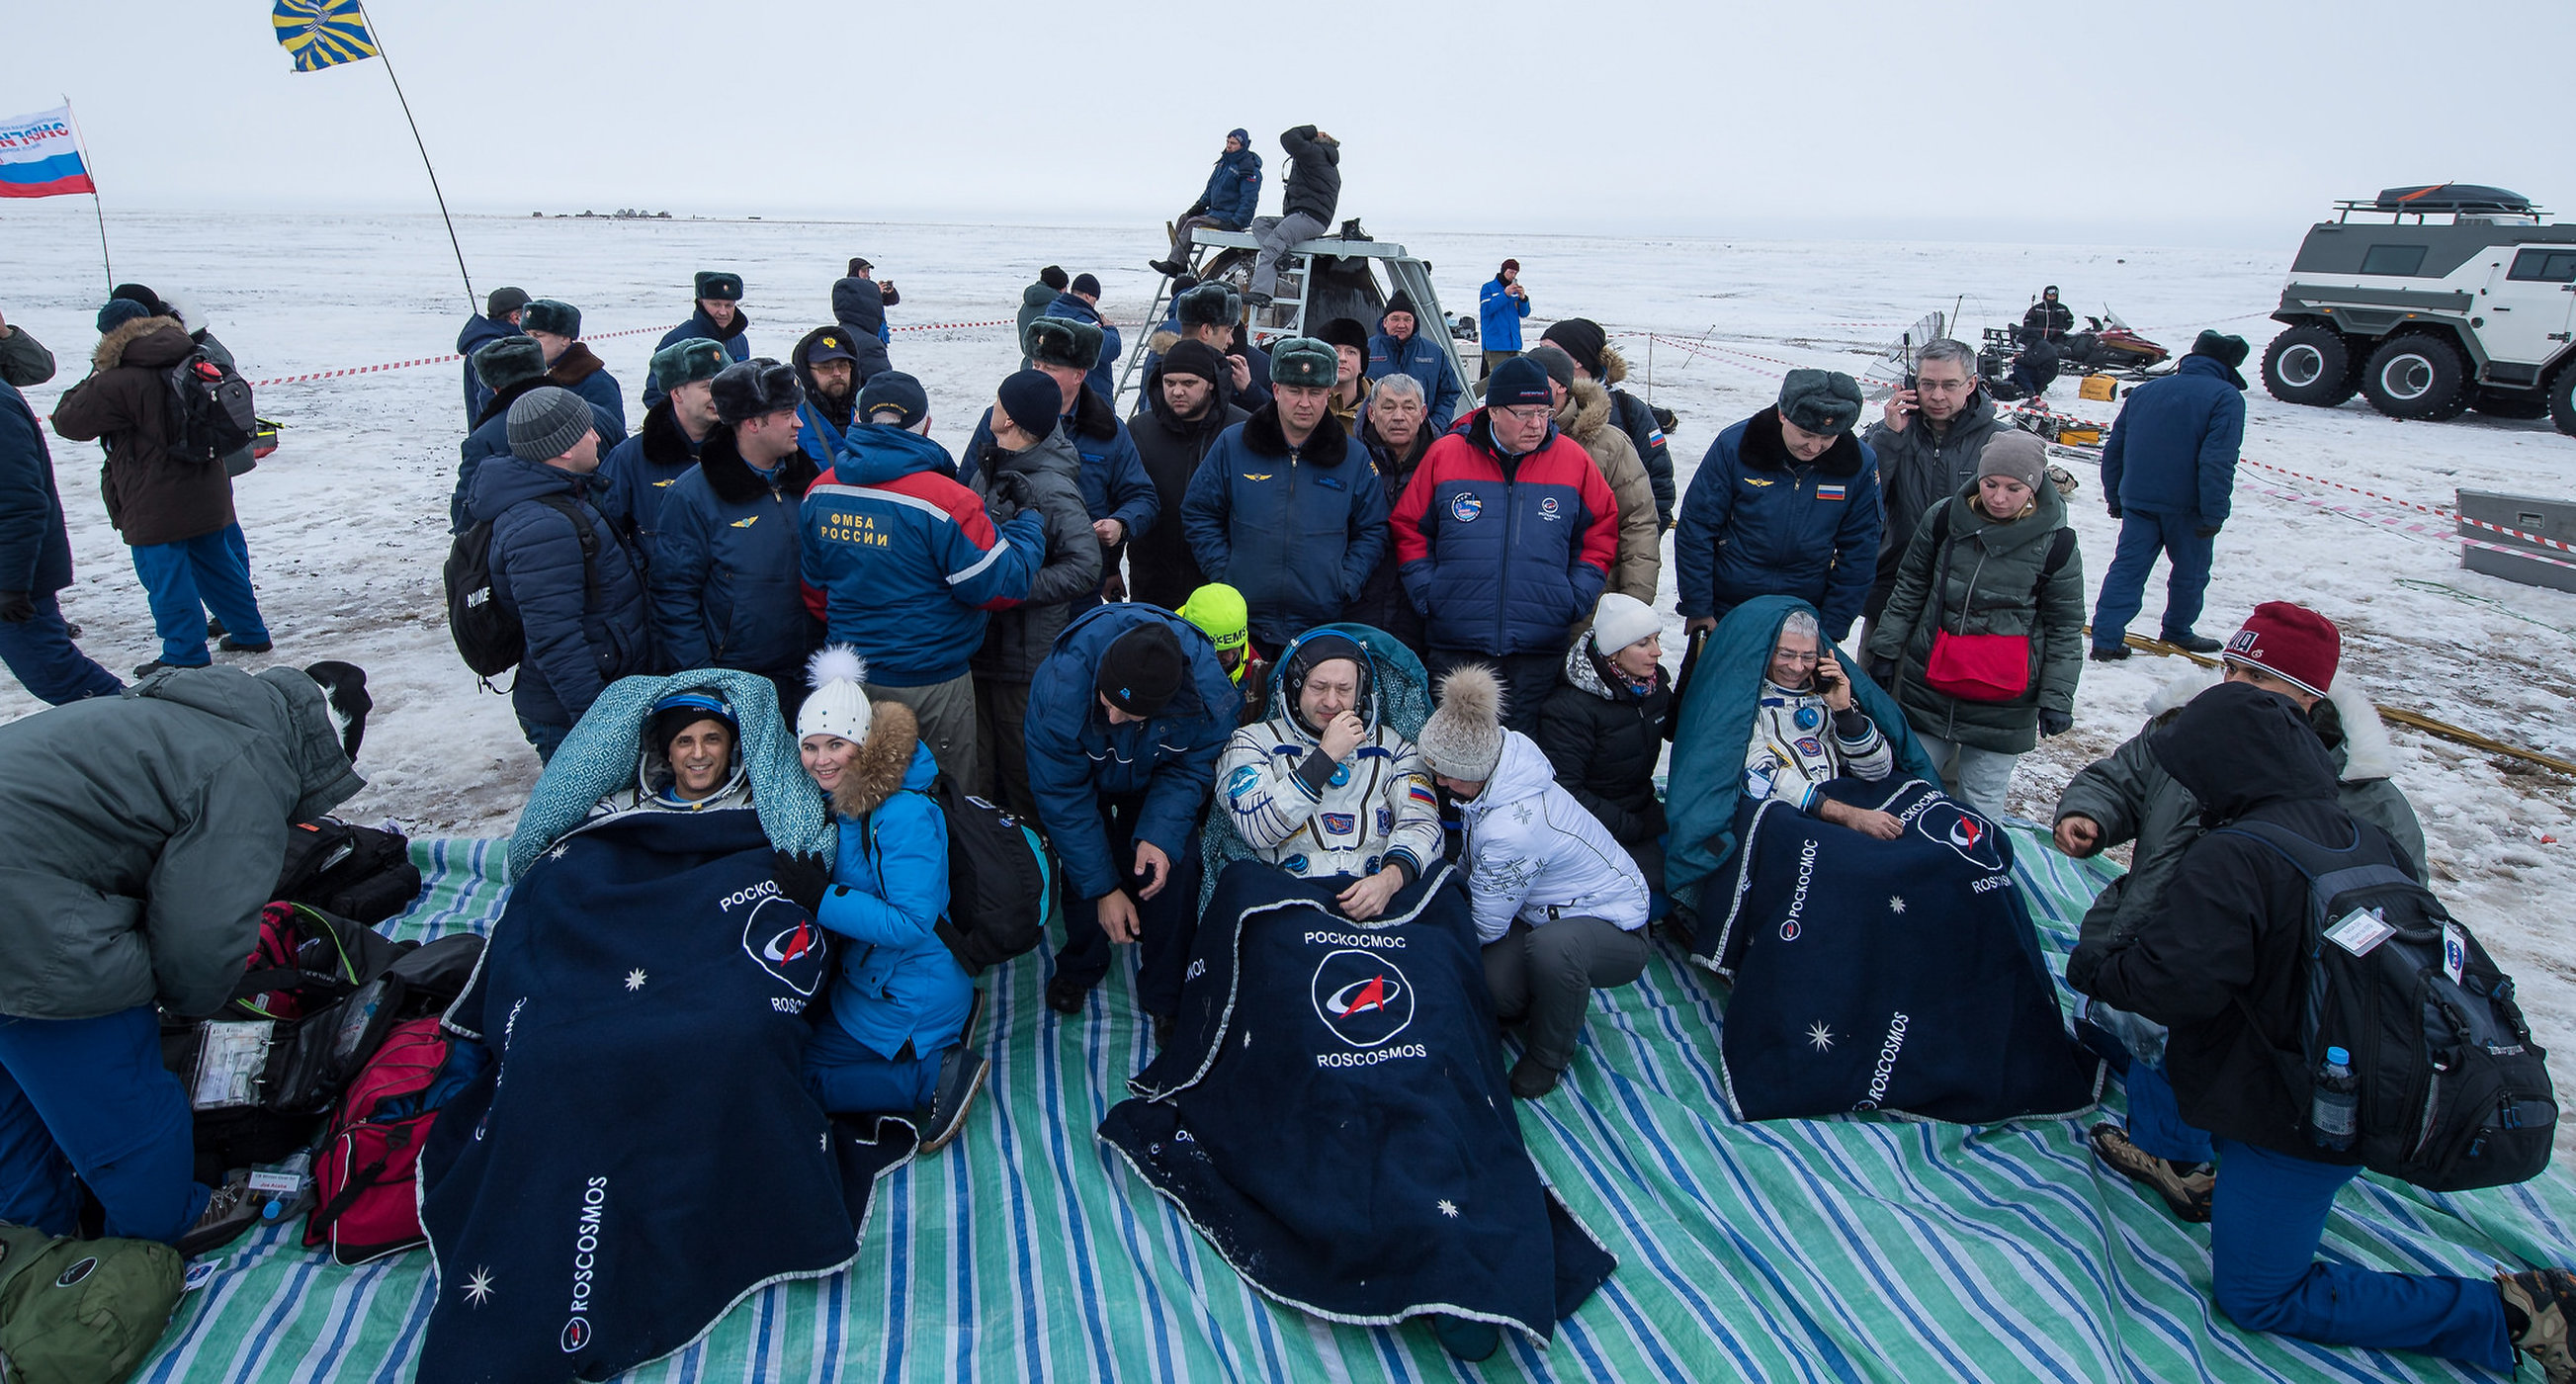 Three International Space Station astronauts landed on Earth after 168 days in space.